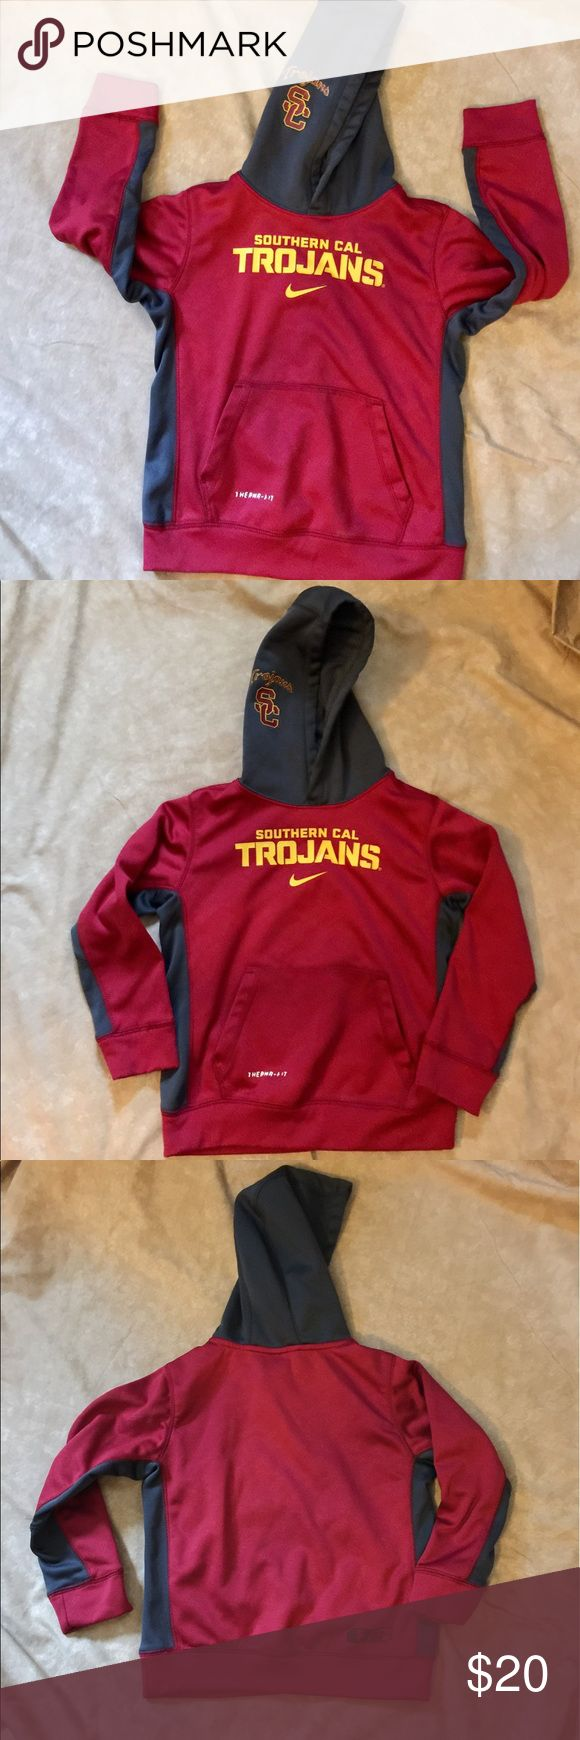 "USC Hoodie Official University of Southern California hoodie sports wear,  size 6. The printing ""THERMA-FIT' on the bottom of sweatshirt is slightly starting to peel and can be seen on the 1st photo. Otherwise it is in very good condition. Worn only twice. Nike Shirts & Tops Sweatshirts & Hoodies"